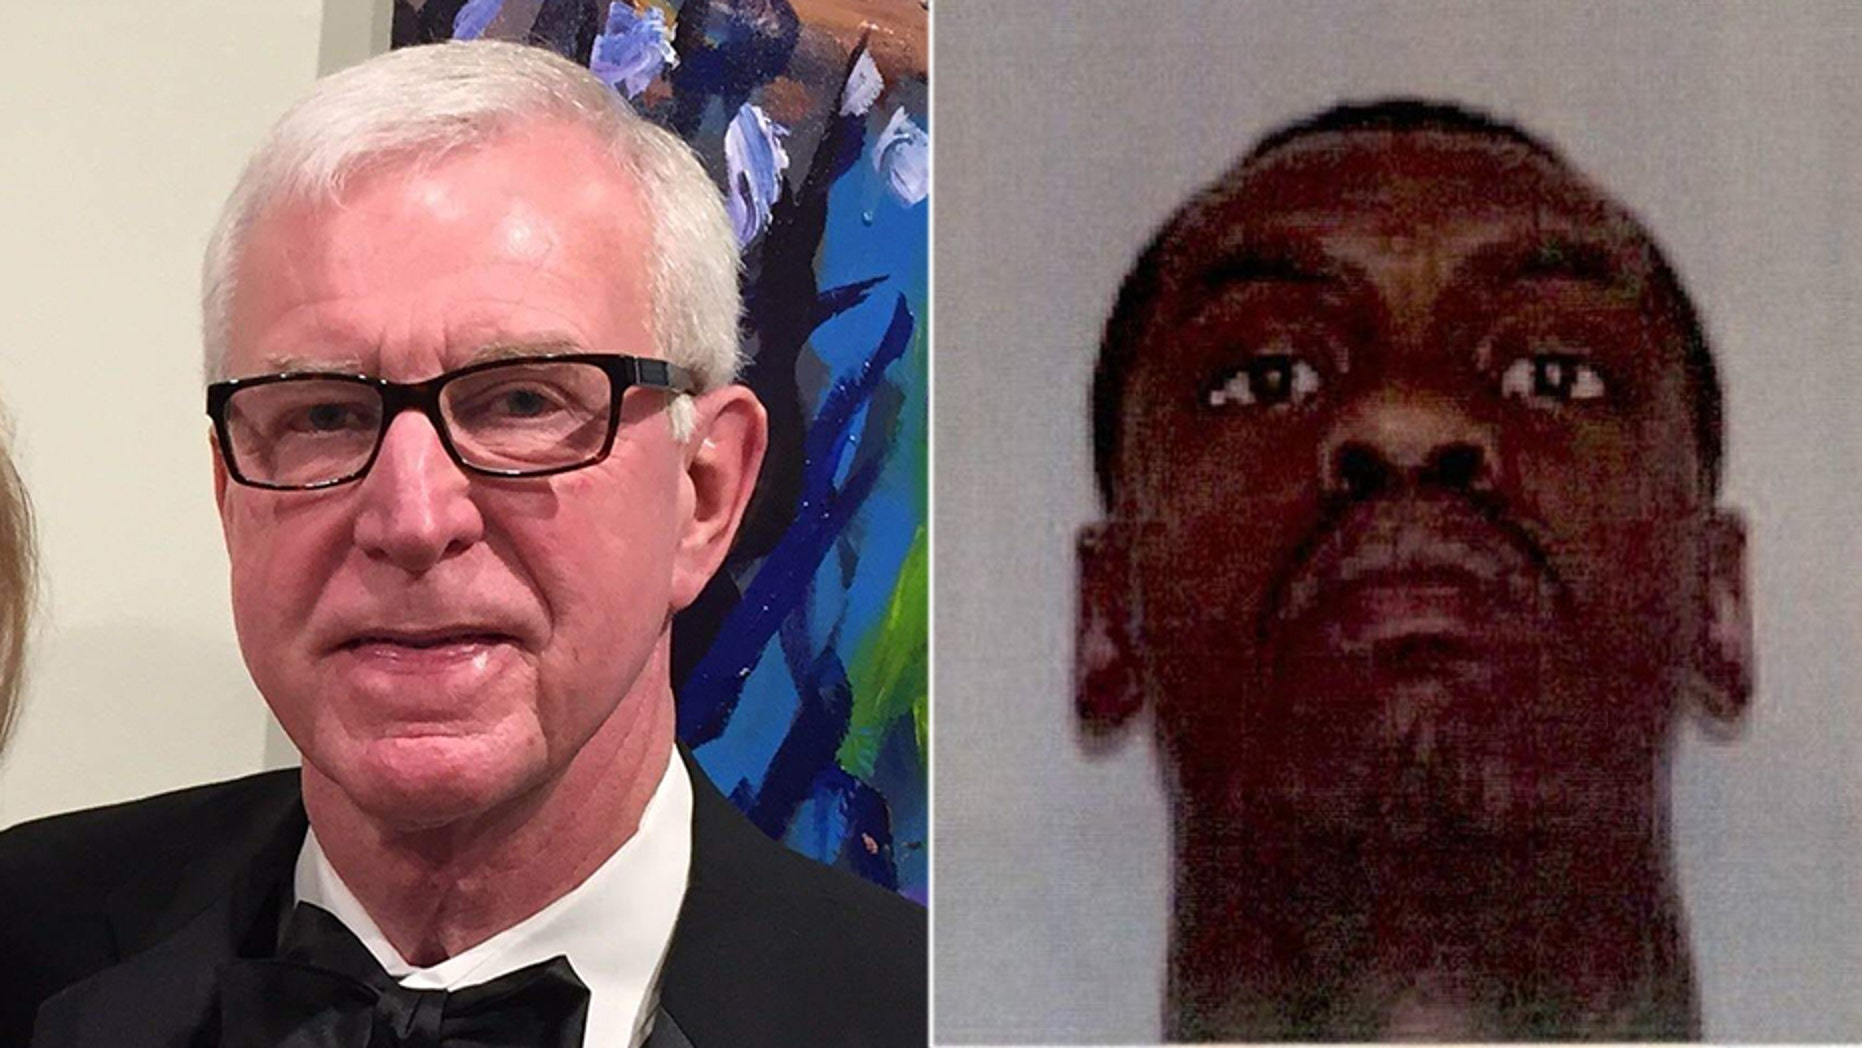 Philanthropist and businessman Jack Hough, 73, (l.) was shot to death Thursday in Gainesville, Ga.. Police on Sunday arrested DeMarvin Bennett, 24, (r.) for the murder.